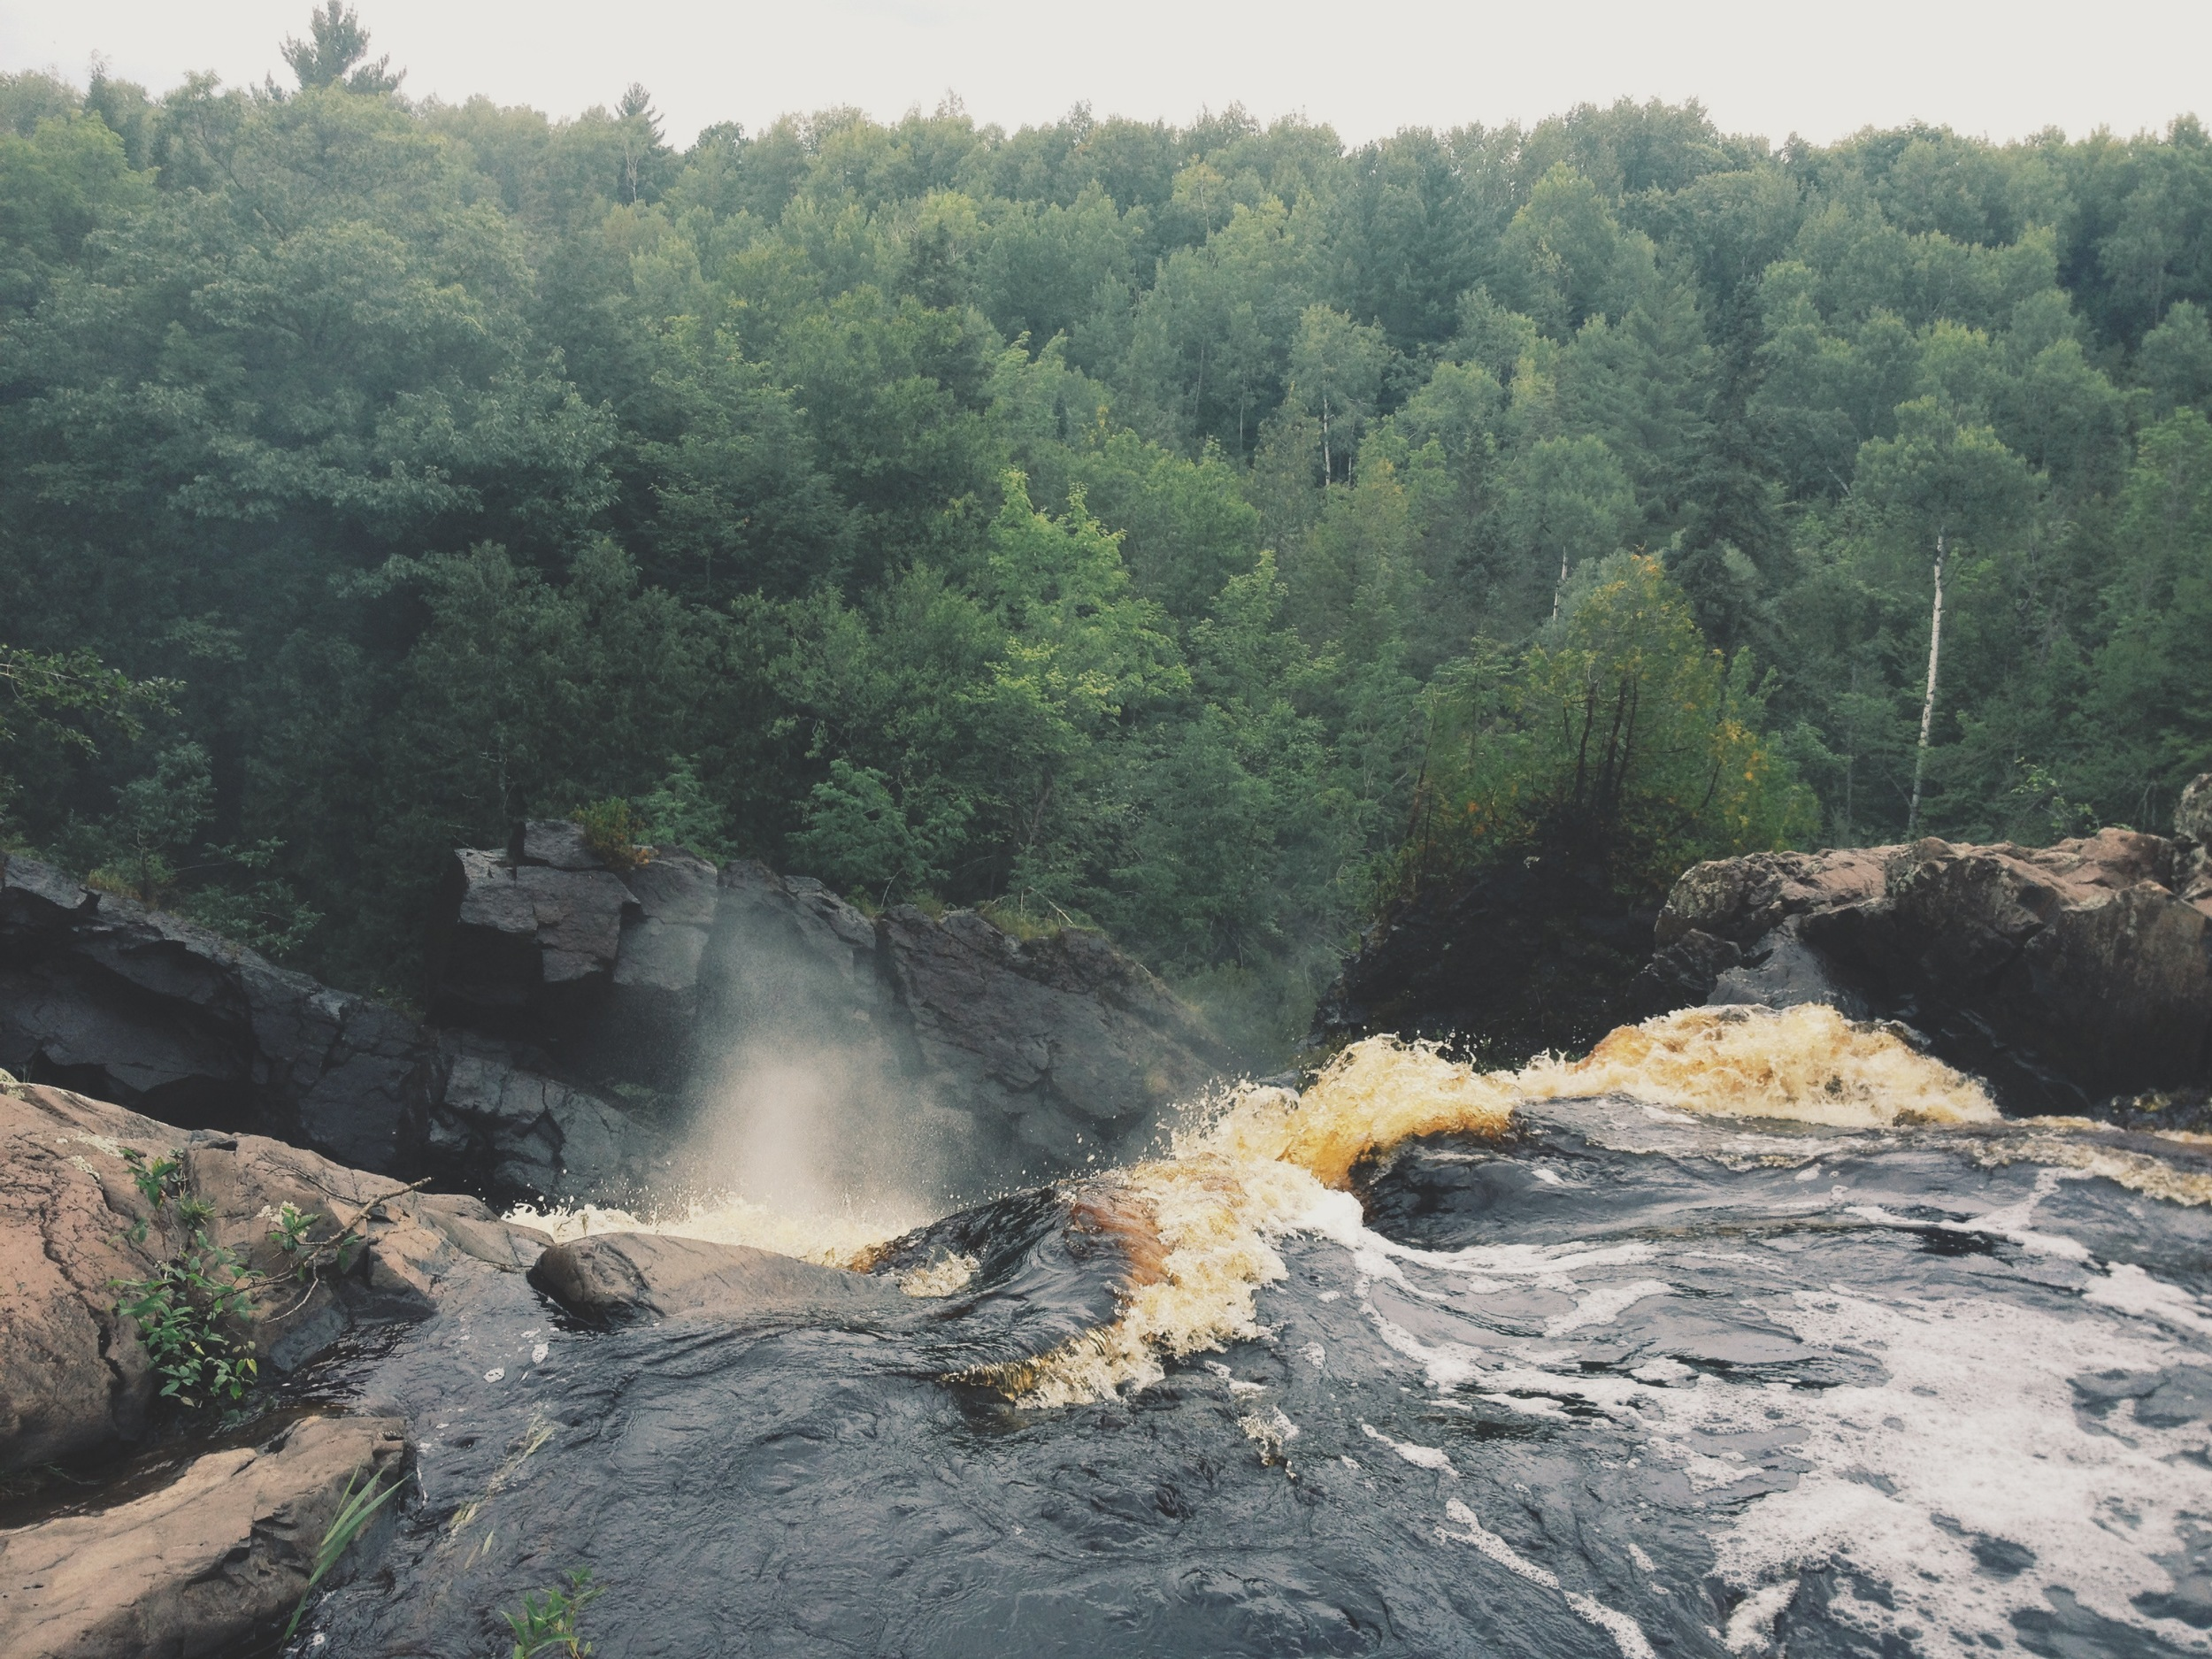 from the top of the waterfall. (iPhone photo)